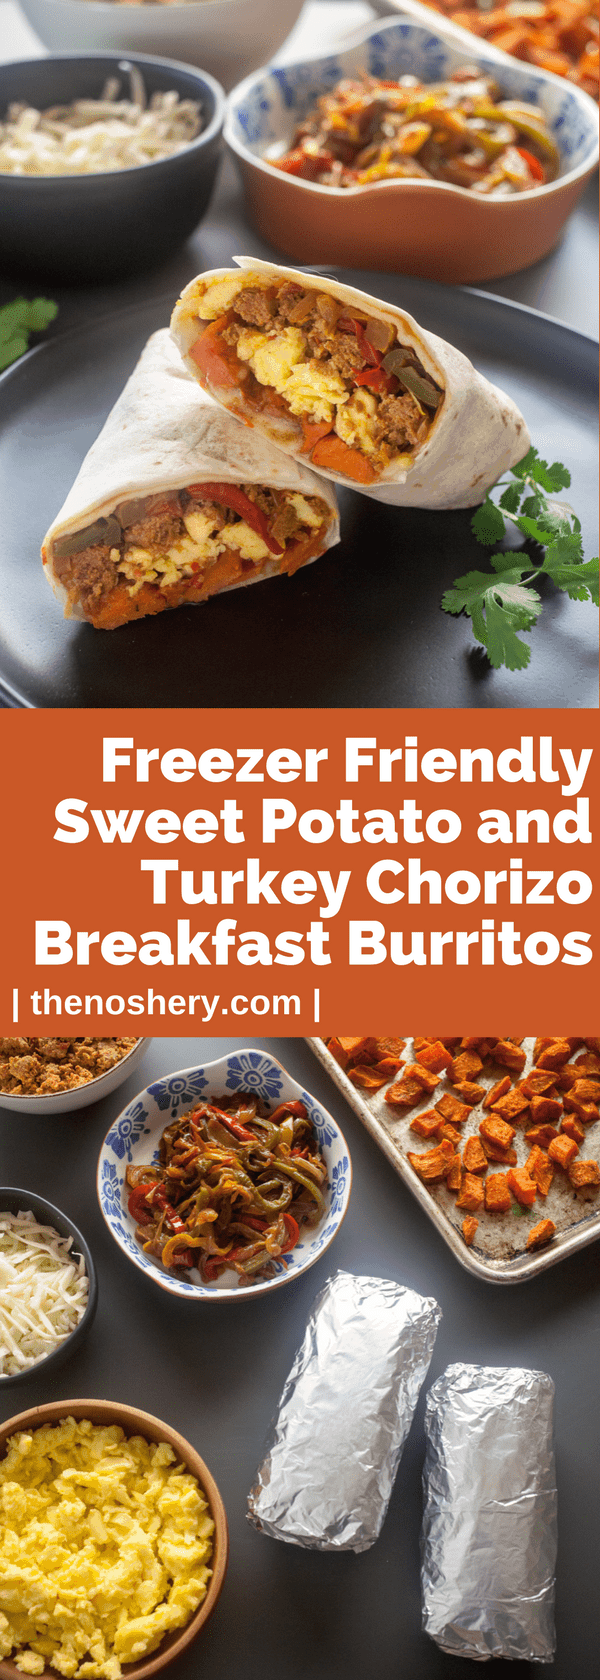 Swet Potato & Turkey Chorizo Breakfast Burritos | Filling breakfast burritos with roasted sweet potatoes, eggs, cheese, and turkey chorizo. Make these over the weekend and be ready for the week ahead. | The Noshery